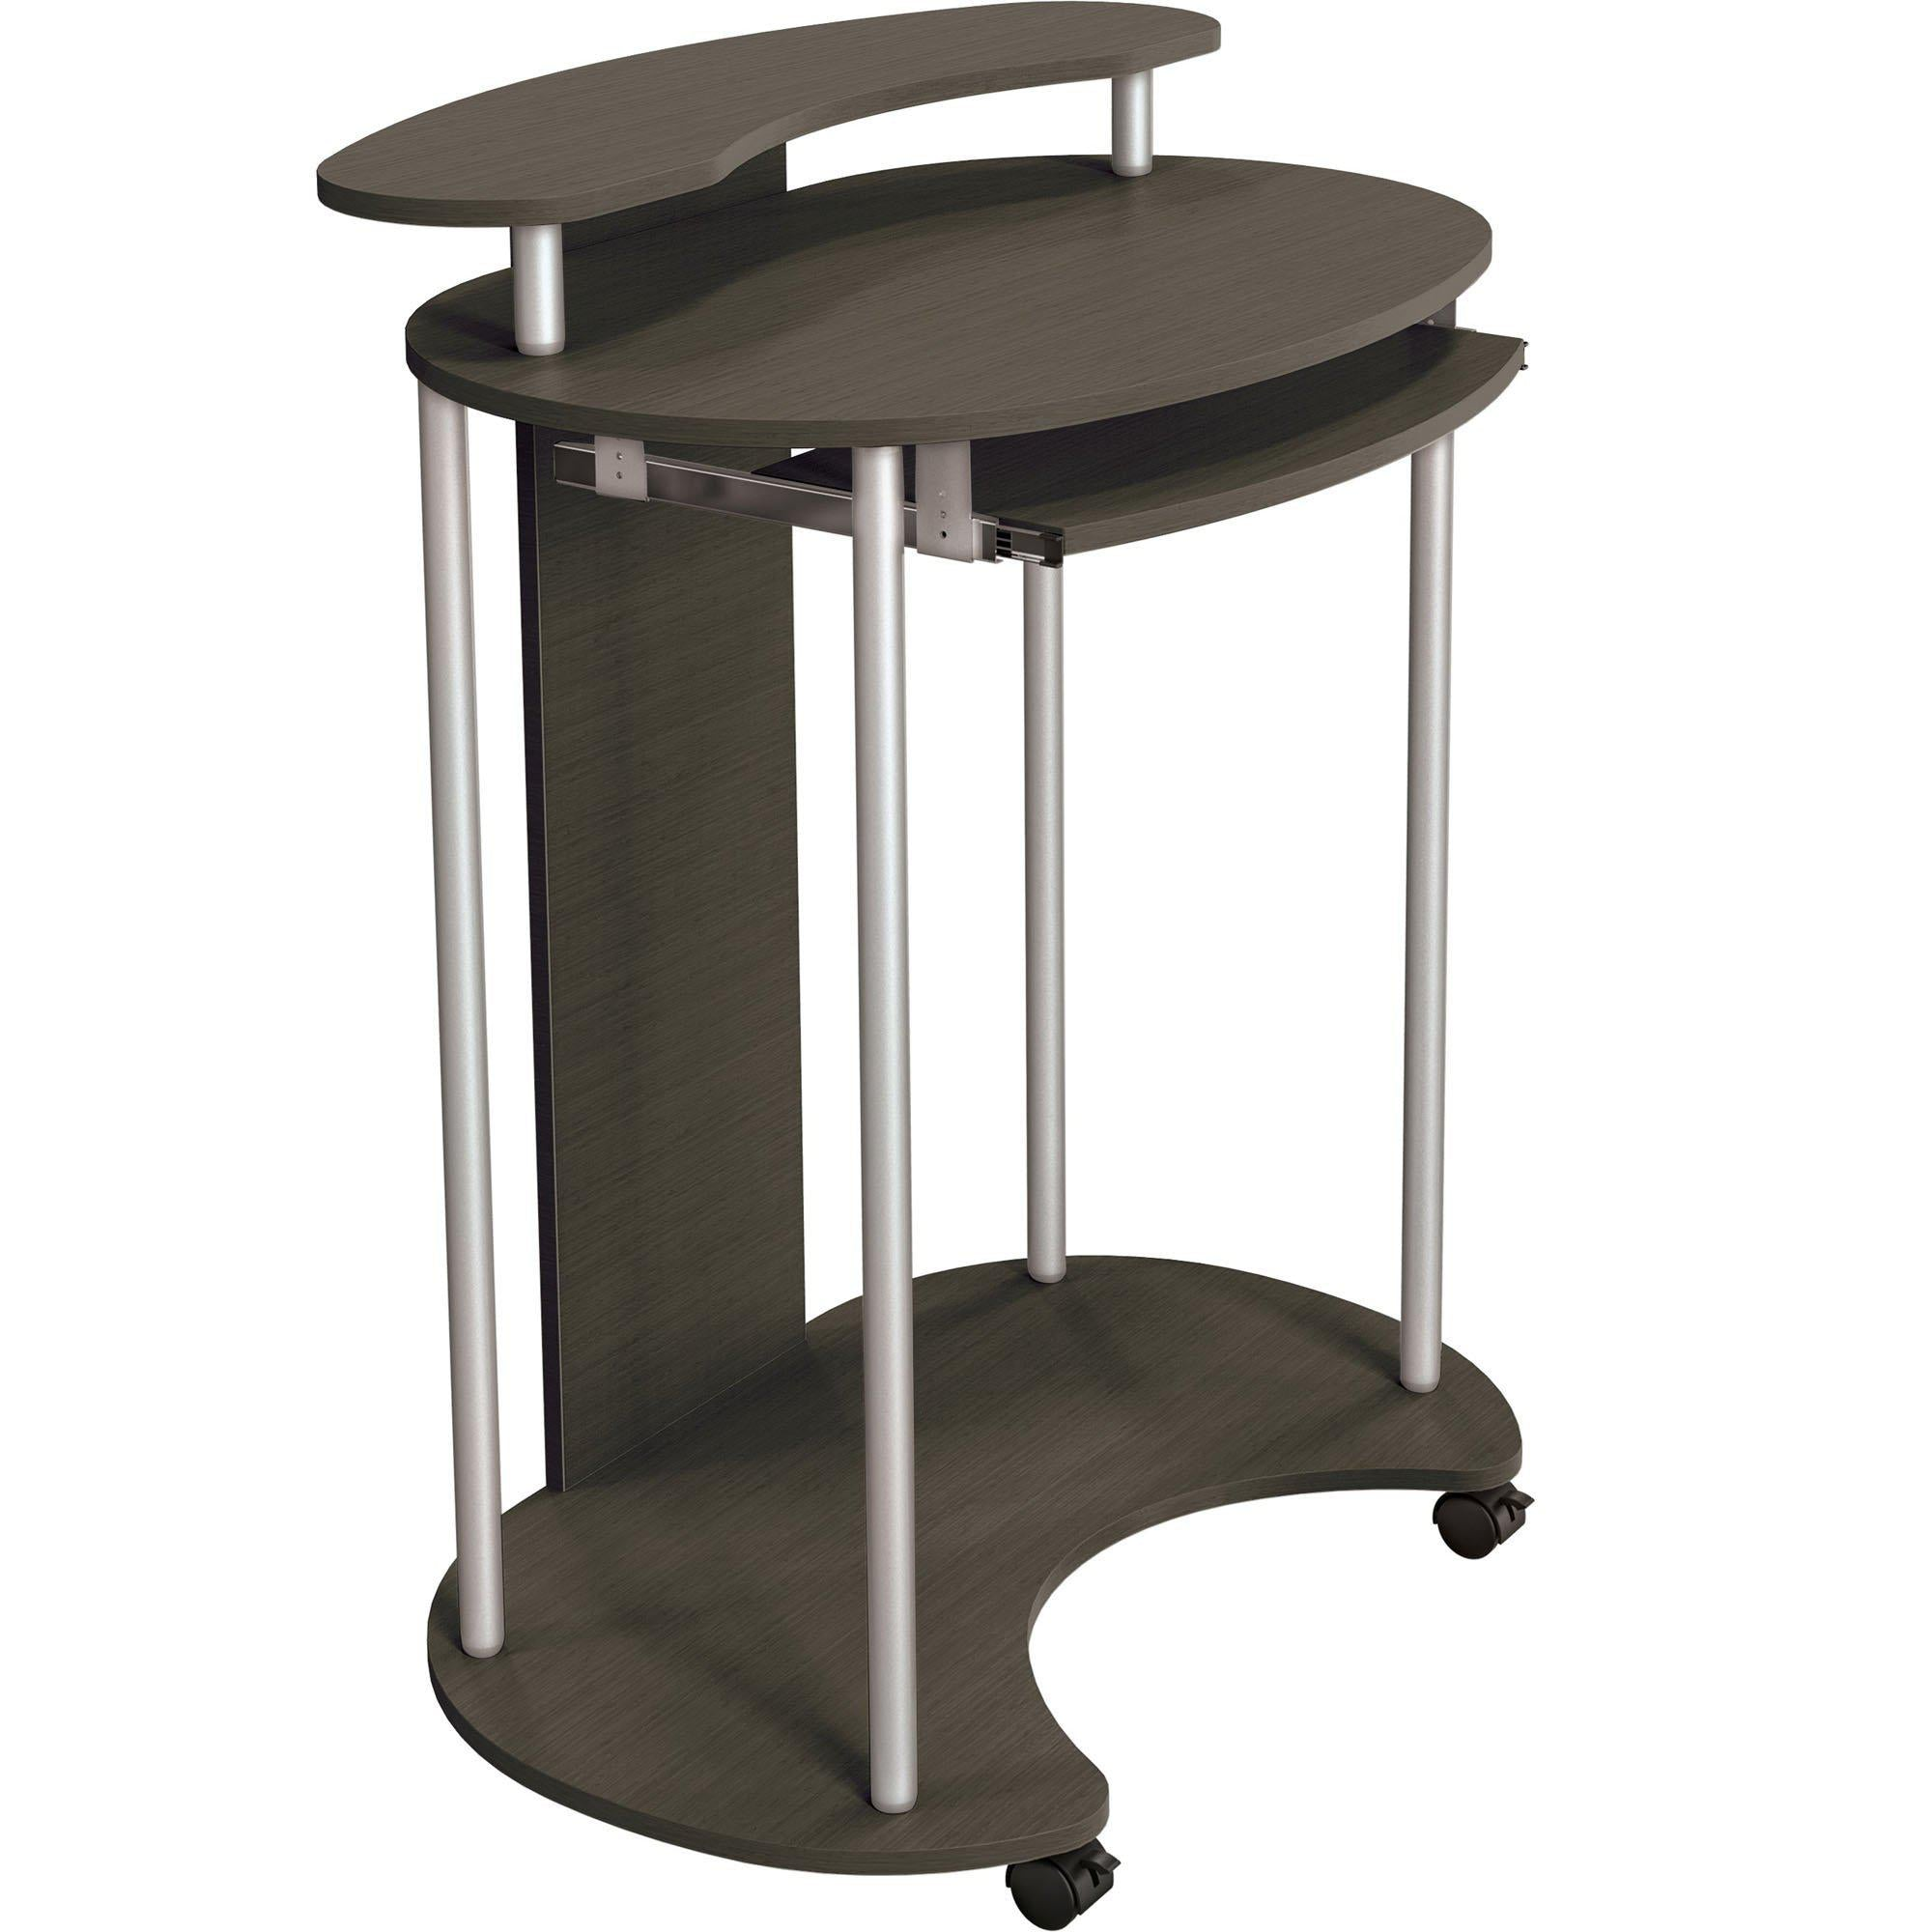 Up-Rite Standing Mobile Workstation-Desks-